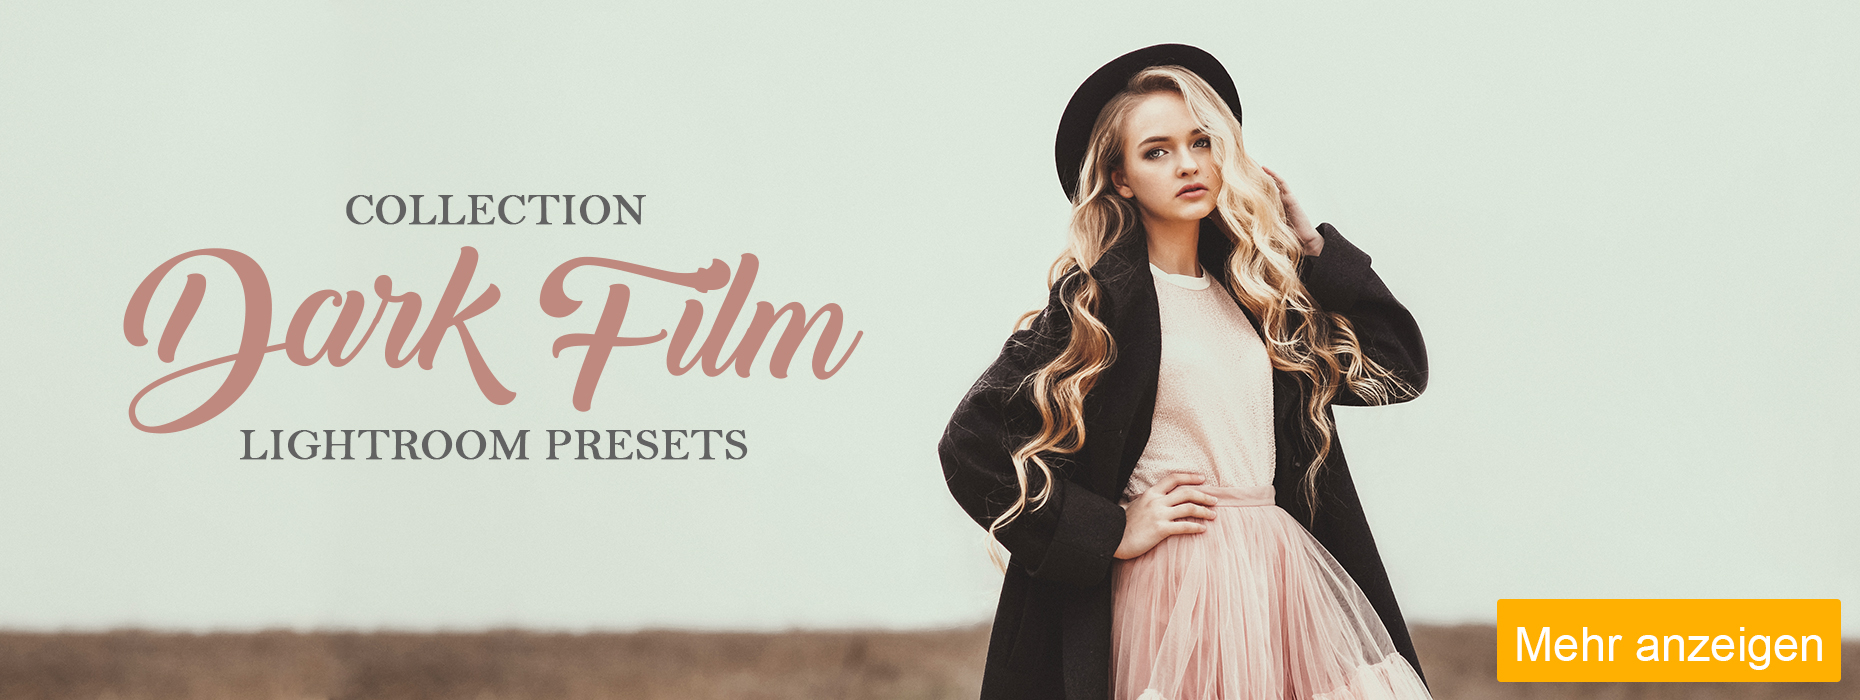 lightroom presets fashion kostenlos dark film